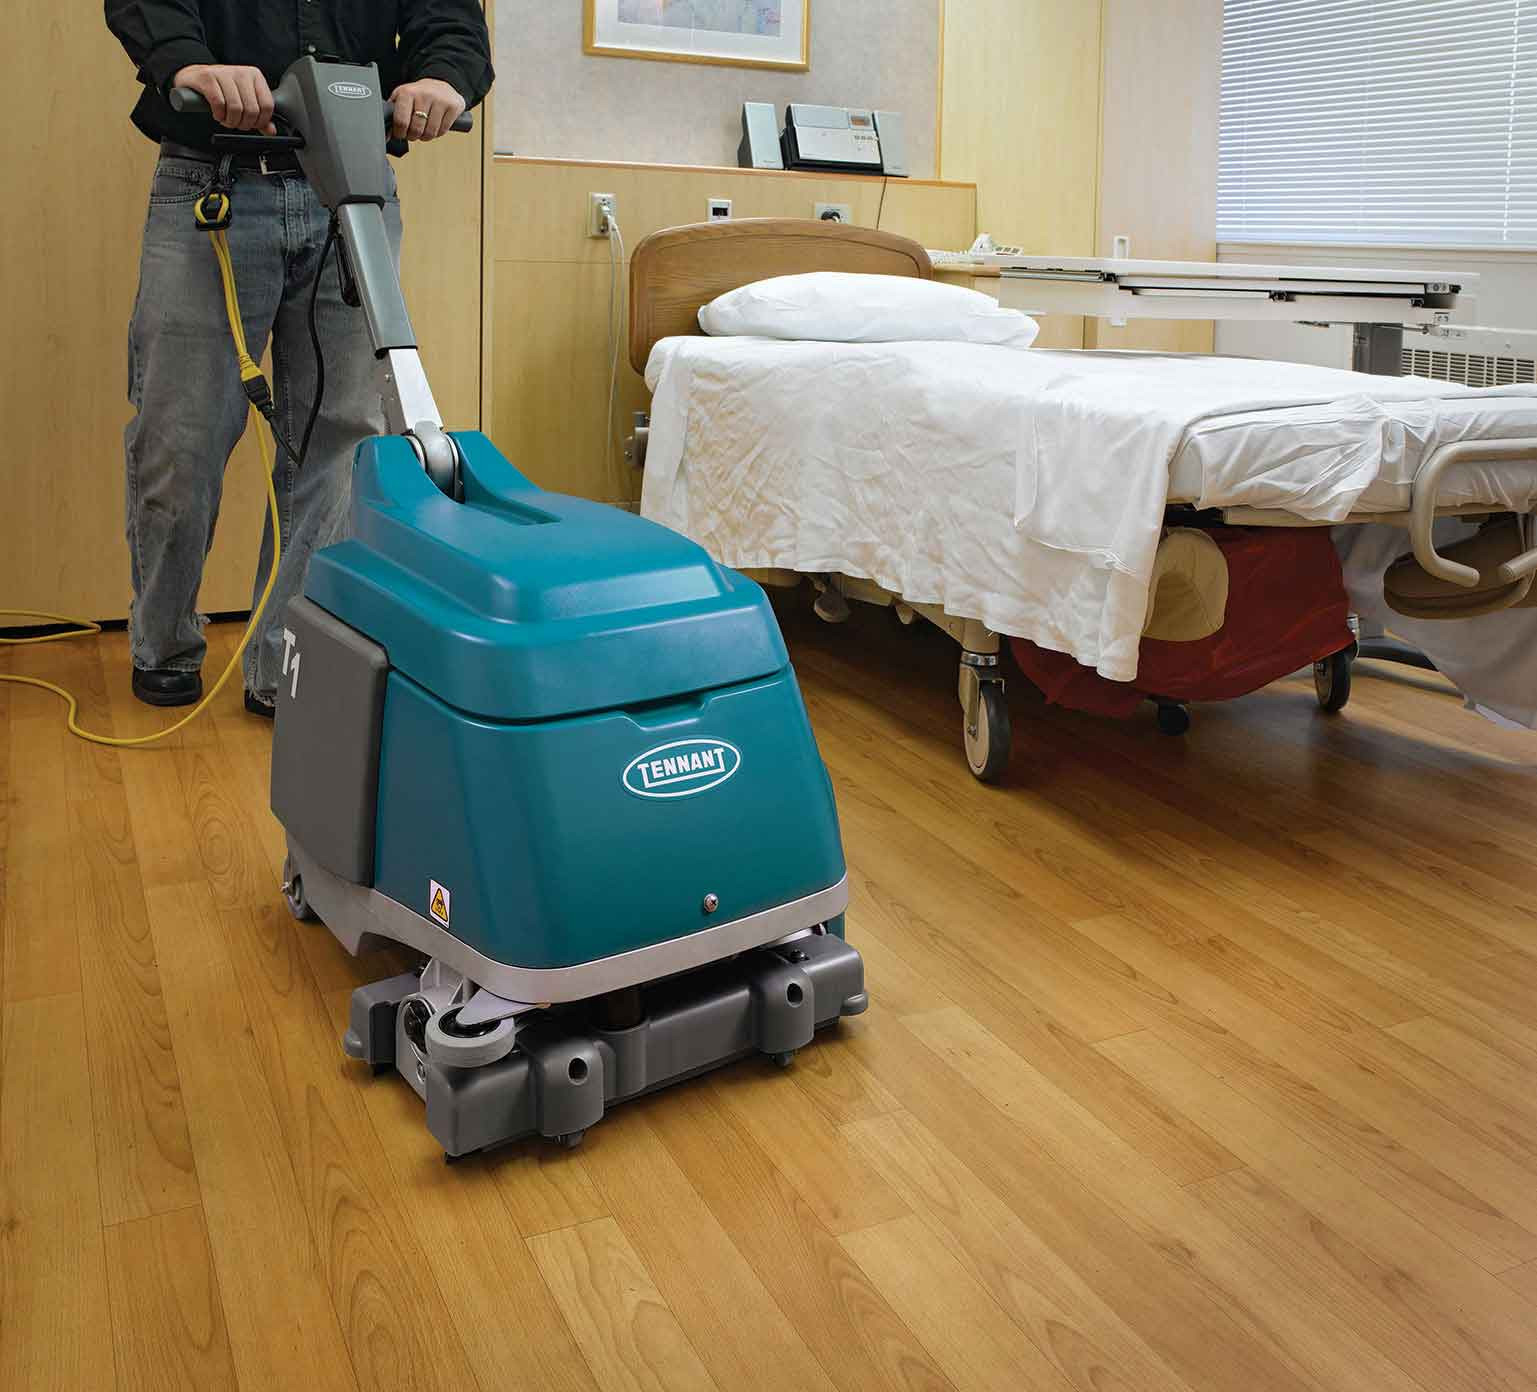 dallas hardwood floor cleaning of t1 walk behind micro scrubber tennant company with regard to t1 walk behind micro scrubber alt 4